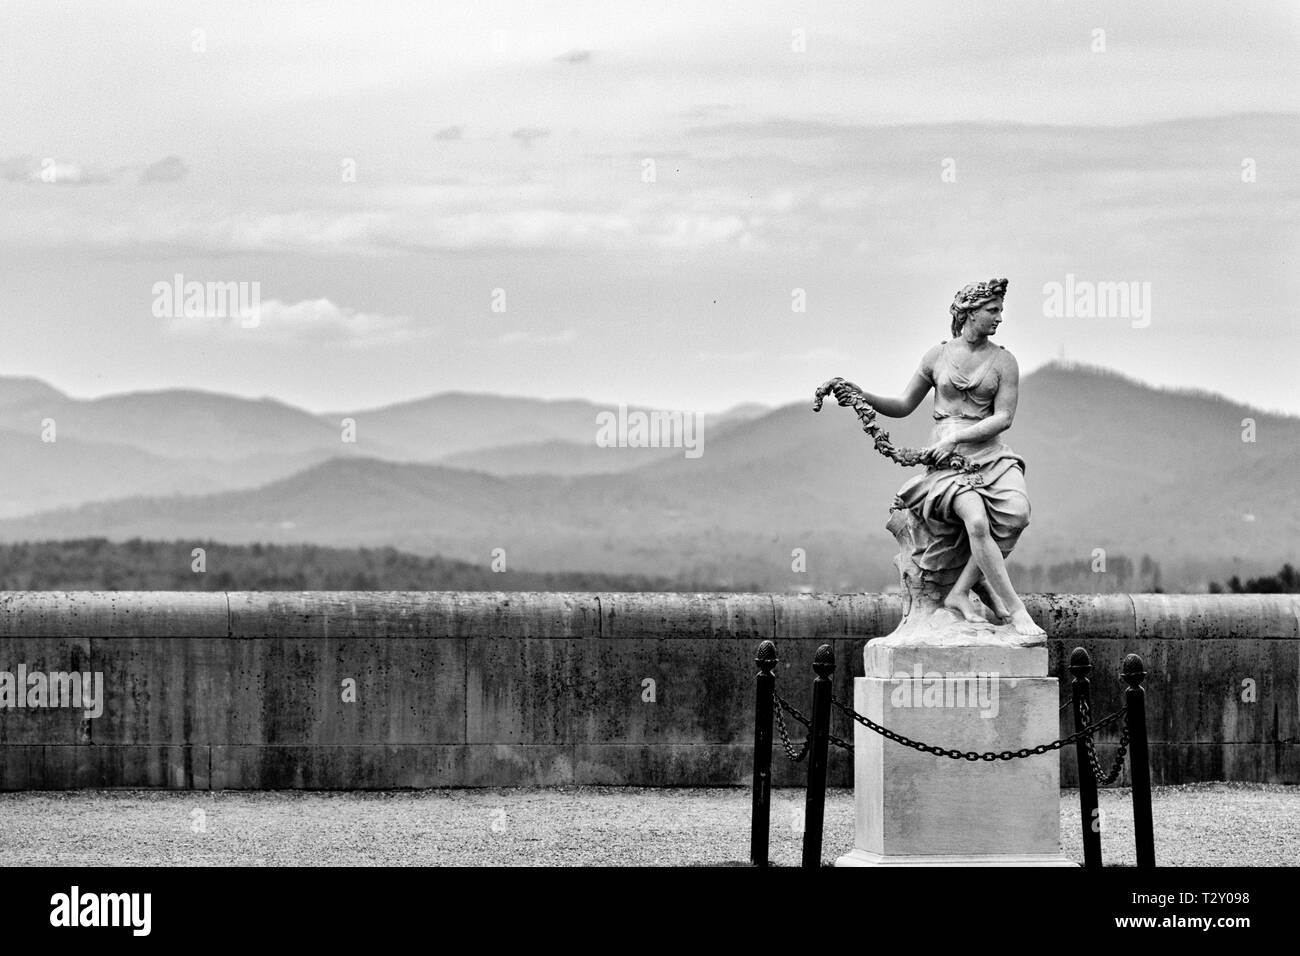 A statue of Flora or Venus stands in front of a vast view of the Great Smokies, including Mount Pisgah, at the Biltmore Estate in Asheville, NC, USA - Stock Image